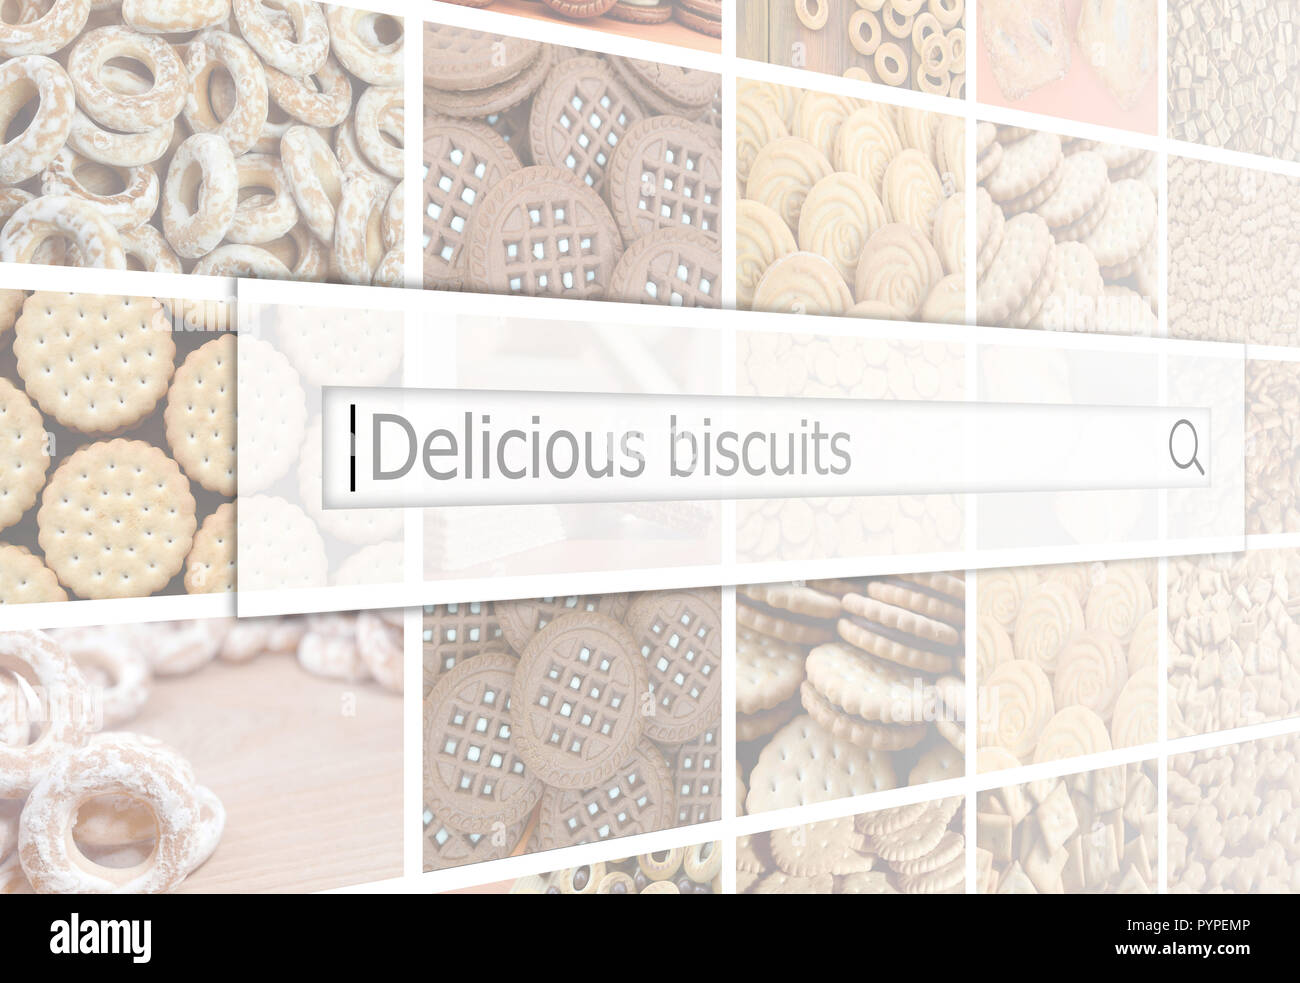 Visualization of the search bar on the background of a collage of many pictures with various sweets close up. Delicious biscuits - Stock Image